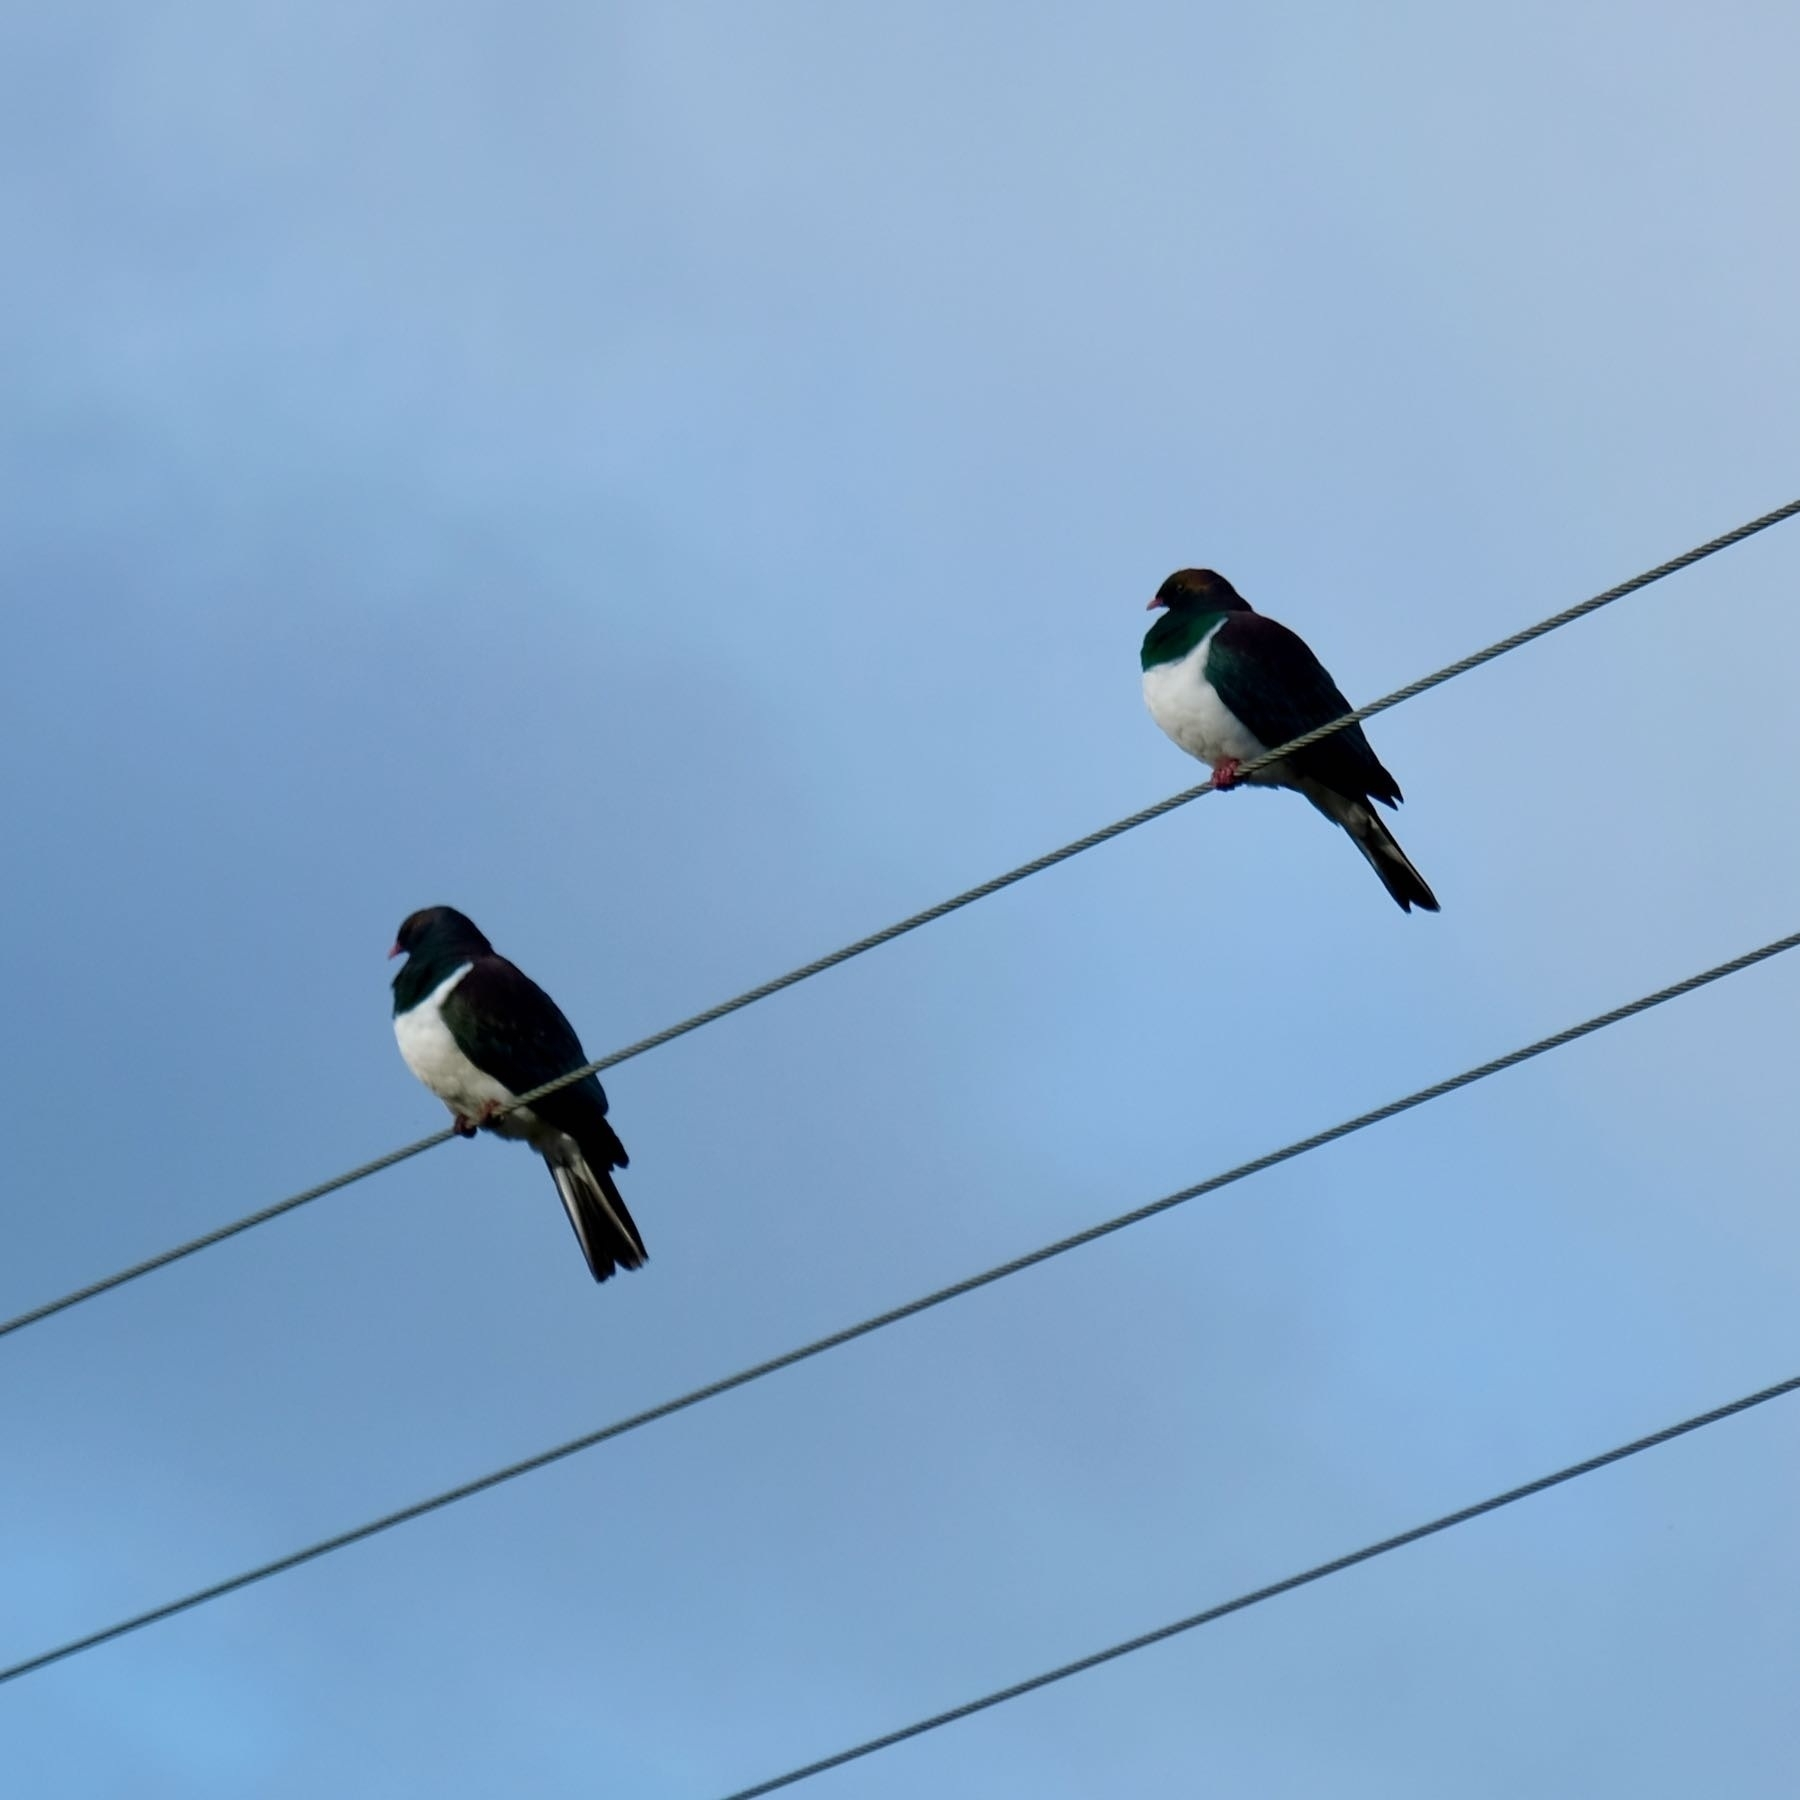 Two large birds on a power line.